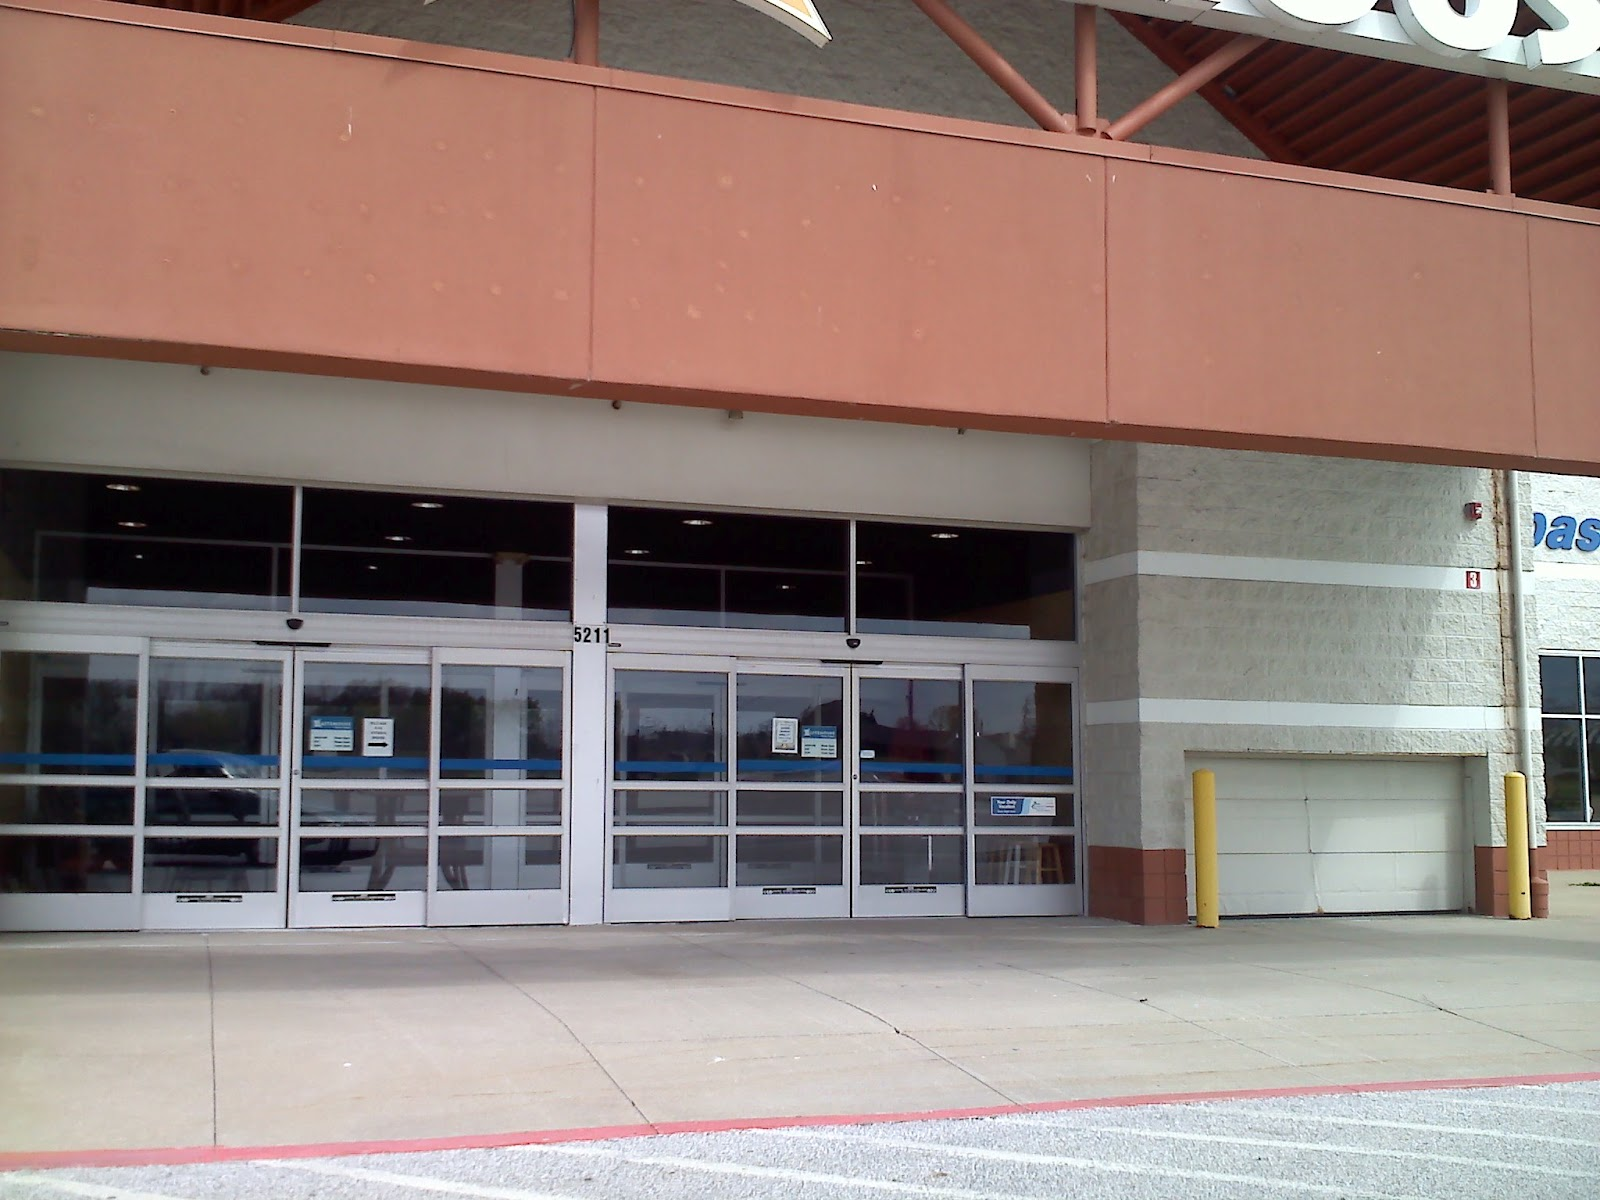 Dead and dying retail former elyria ohio super kmart